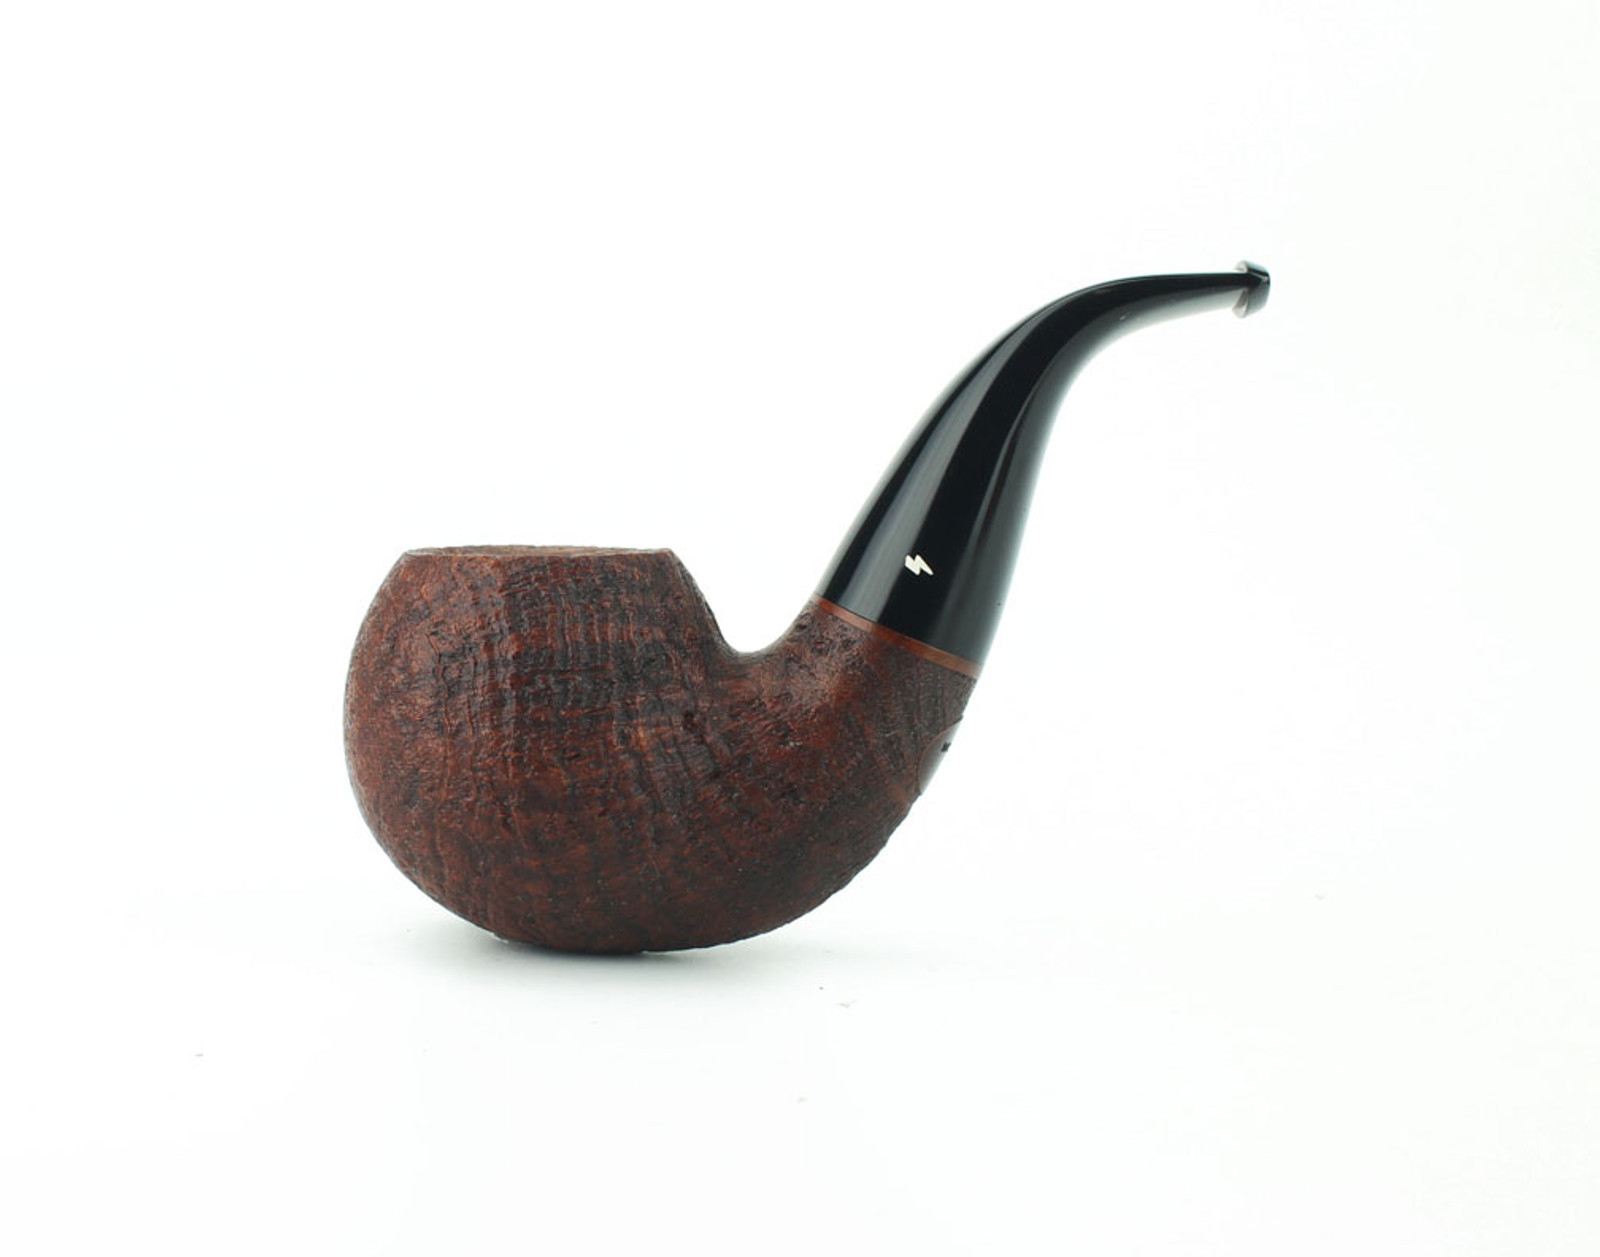 MS09BB BT - Moonshine Cannonball - Leather Blast w/ Black Tapered Stem